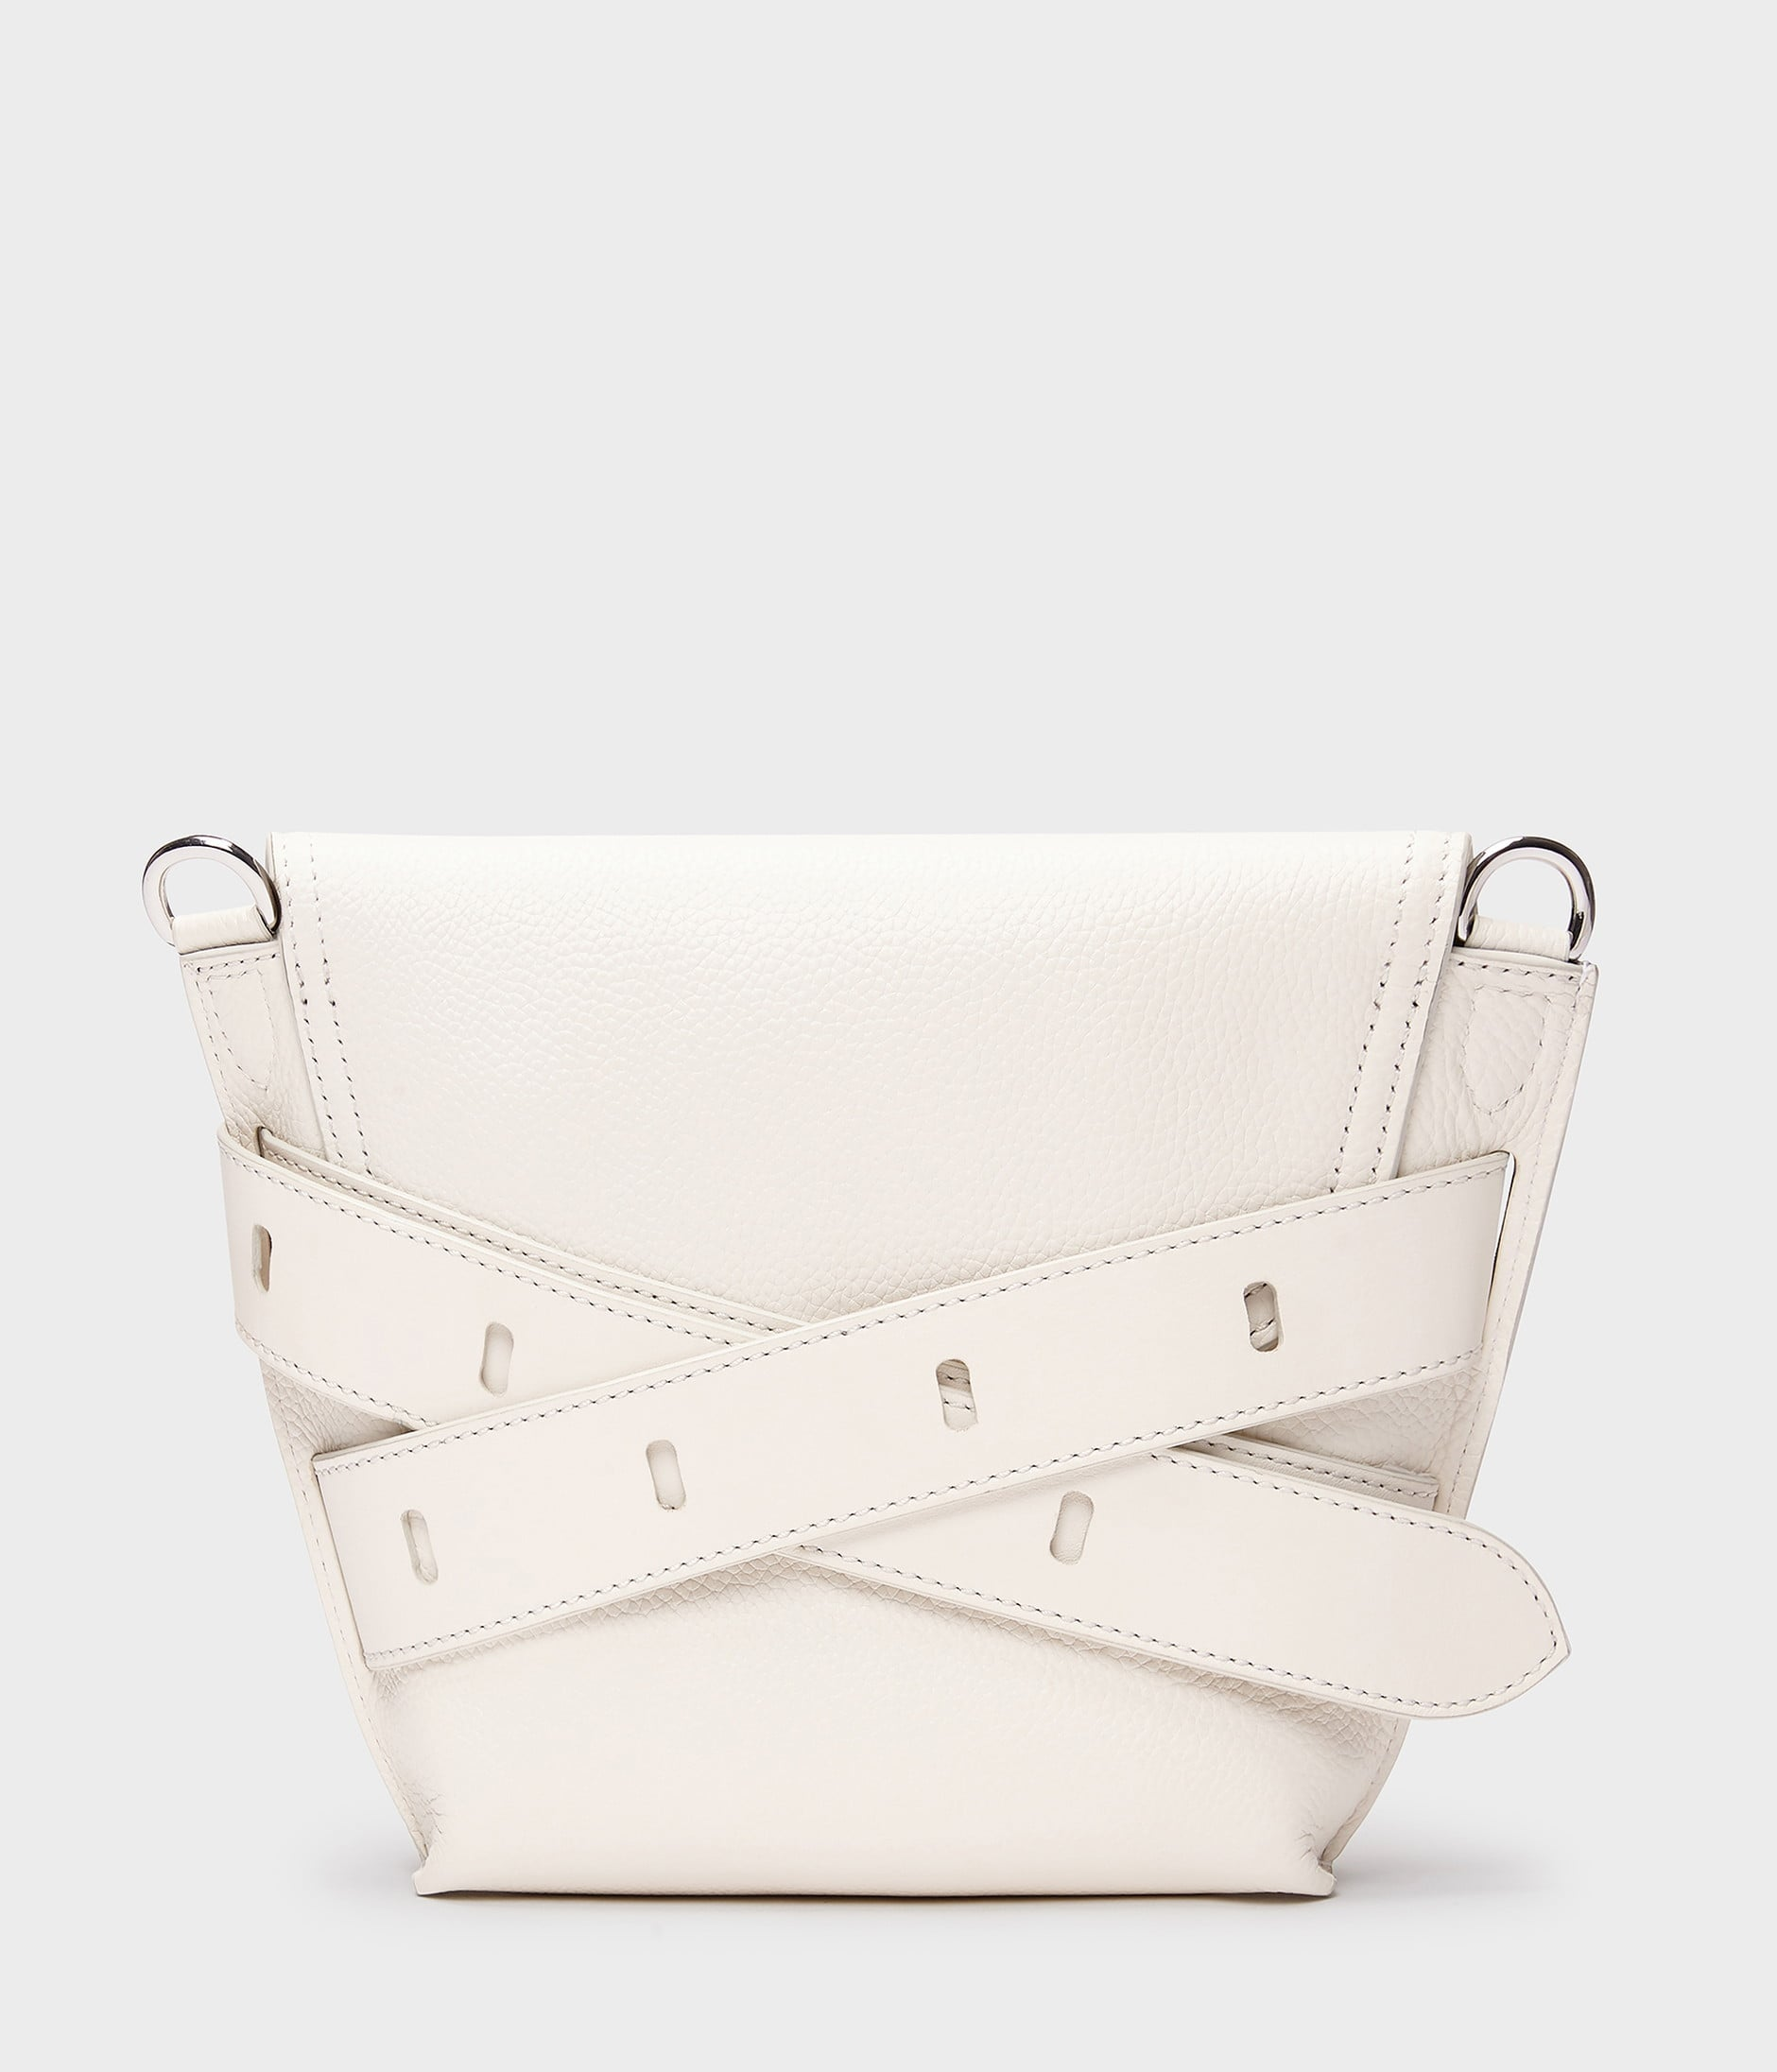 THE BELT POUCH 詳細画像 NEW WHITE 3